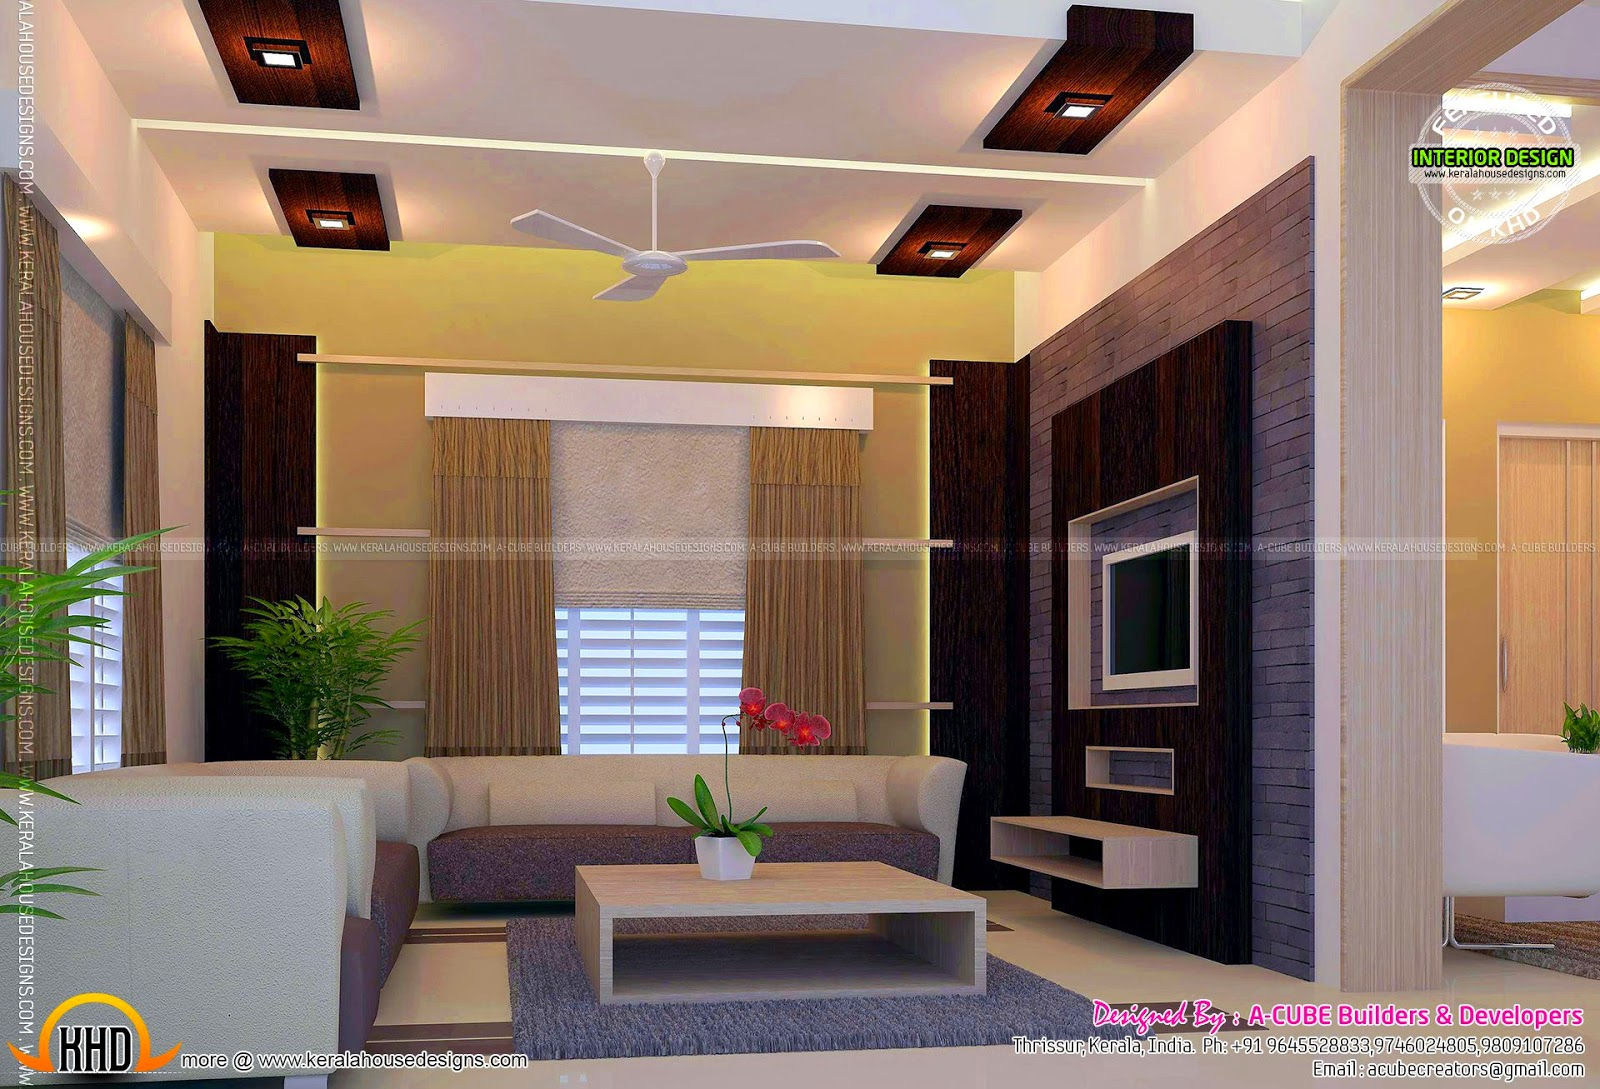 Kerala interior design ideas  Kerala home design and